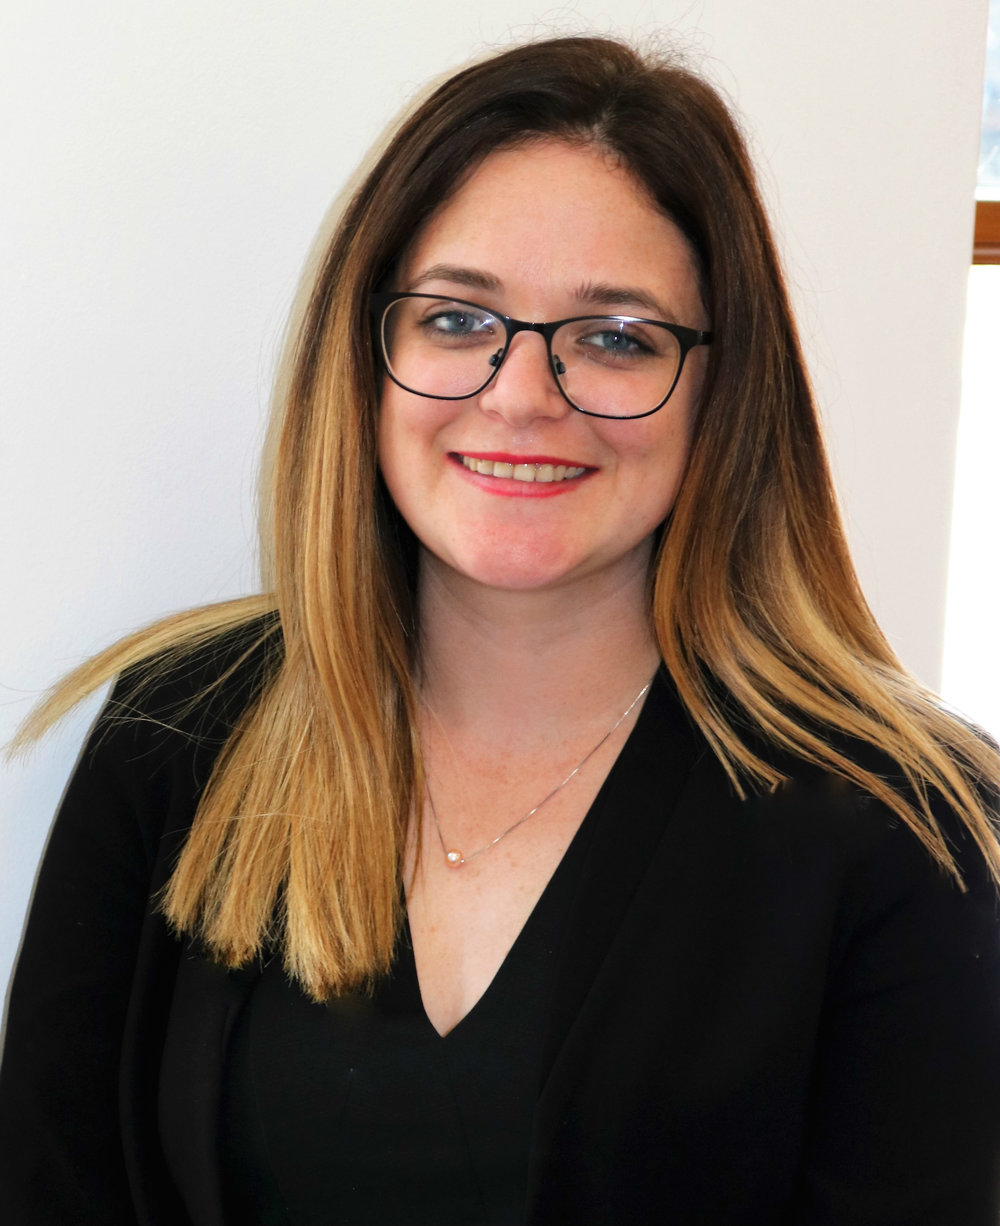 Roisin Hocking, Legal Assistant   Roisin joined Pinel Advocates from Mourant and brings employment law experience to the Local Business Team.  She also deals with corporate and commercial matters, as well as wills and probate.